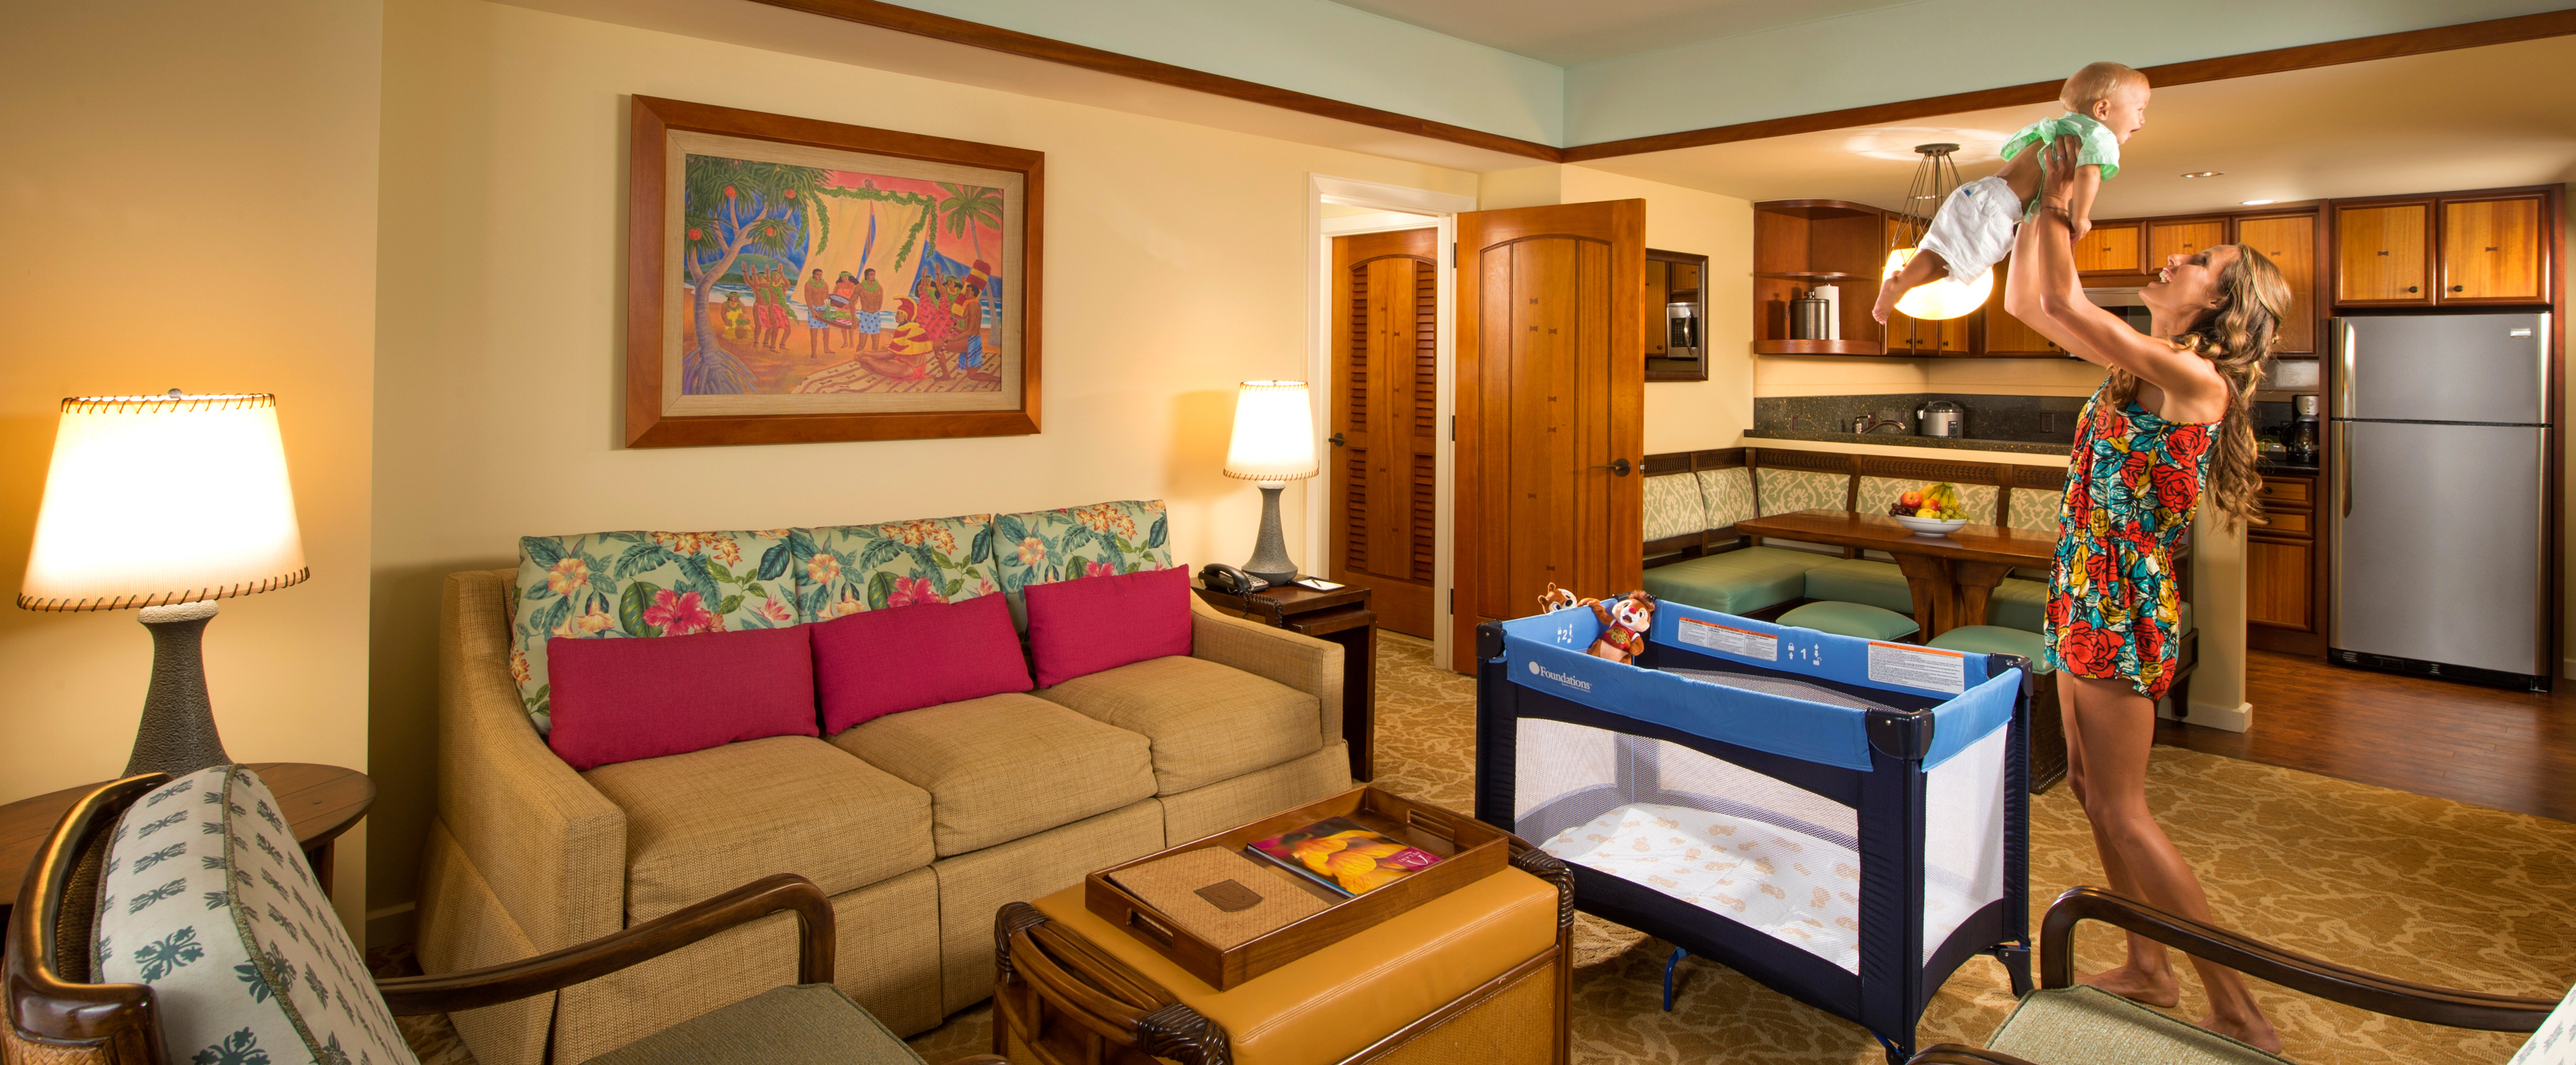 Two bedroom villa aulani hawaii resort spa for 2 living room design